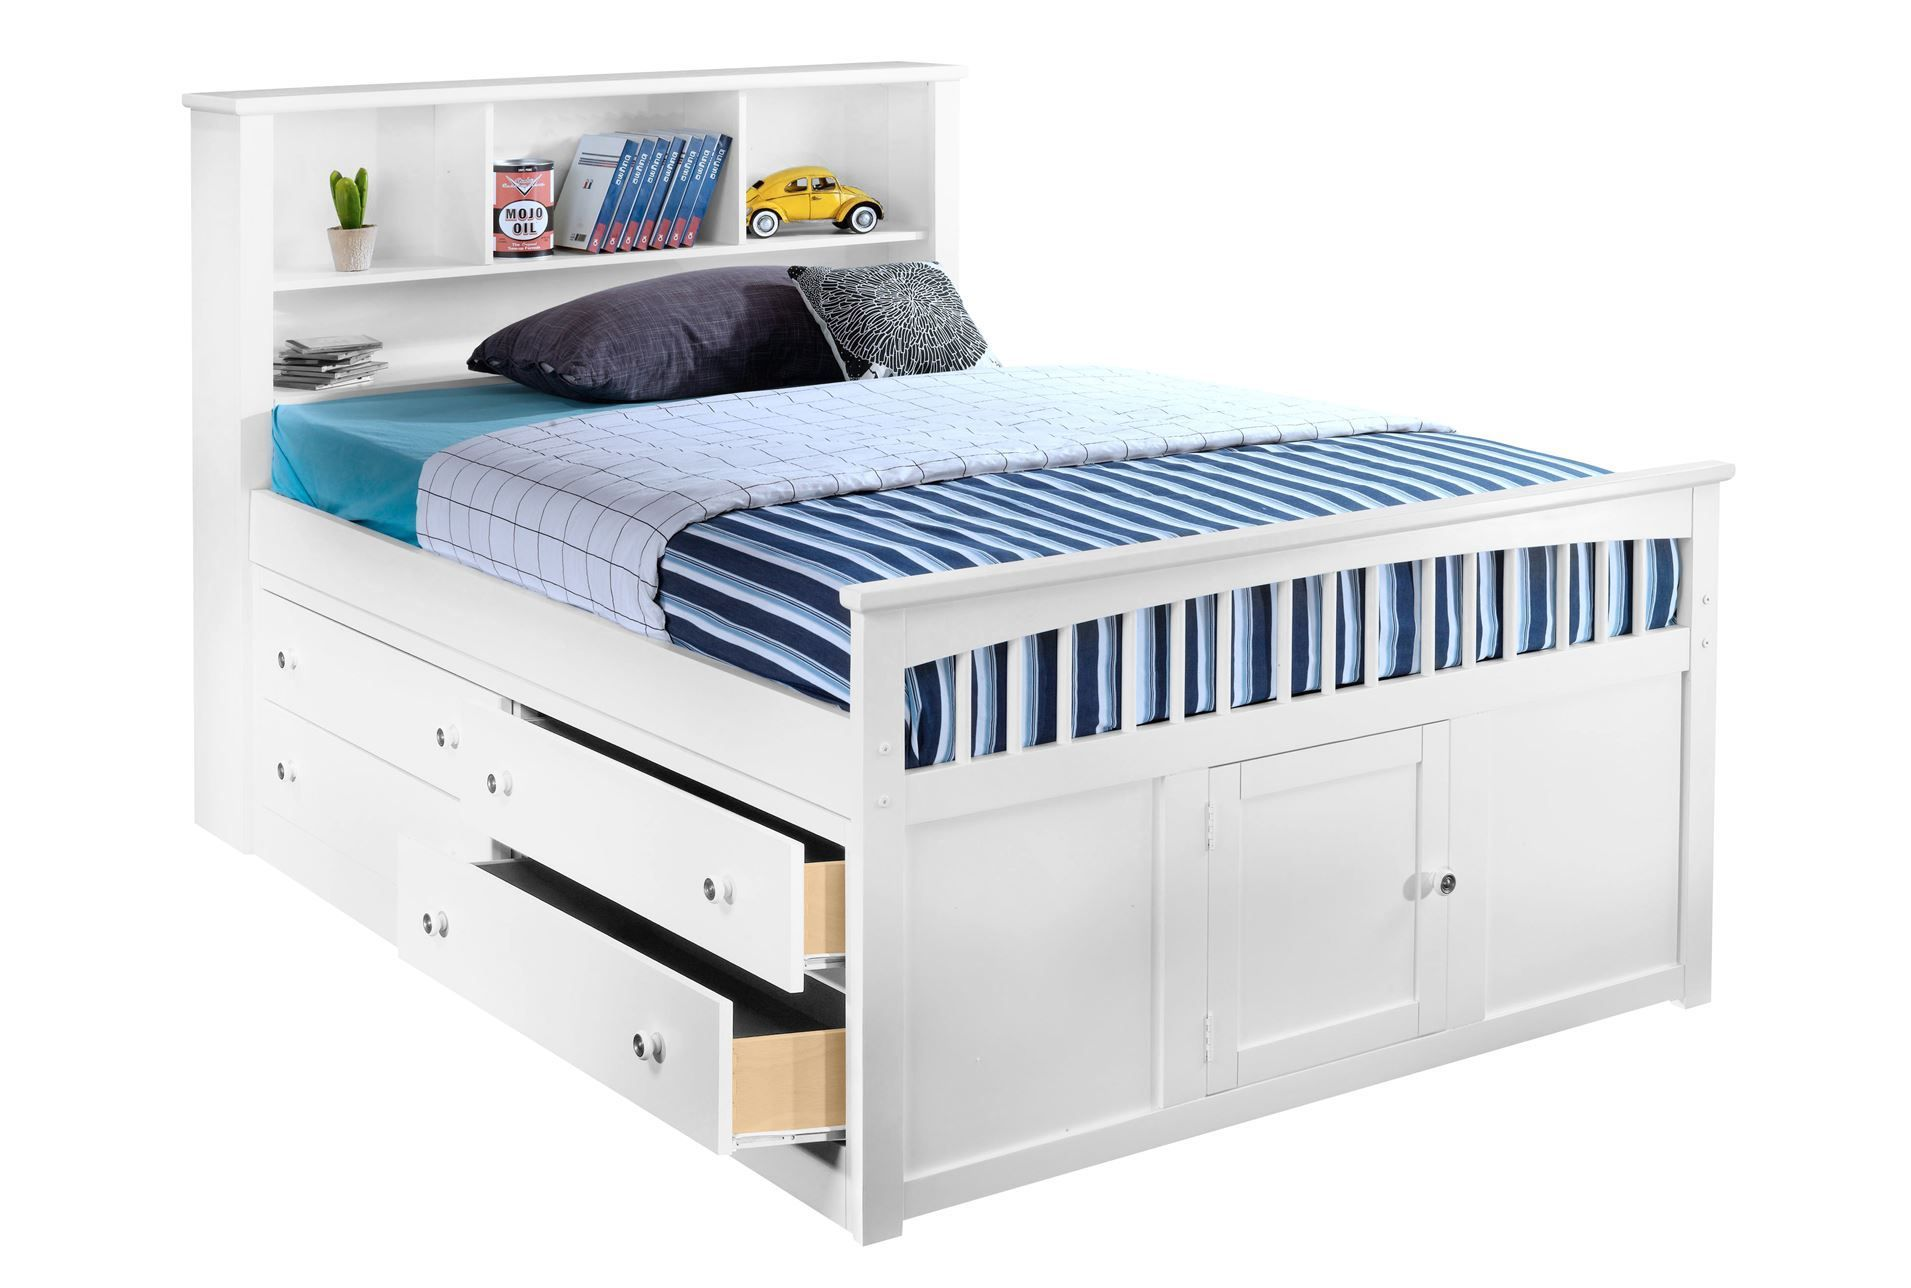 plans nightstands king on beds in size astonishing storage drawers simple frame full original bed with